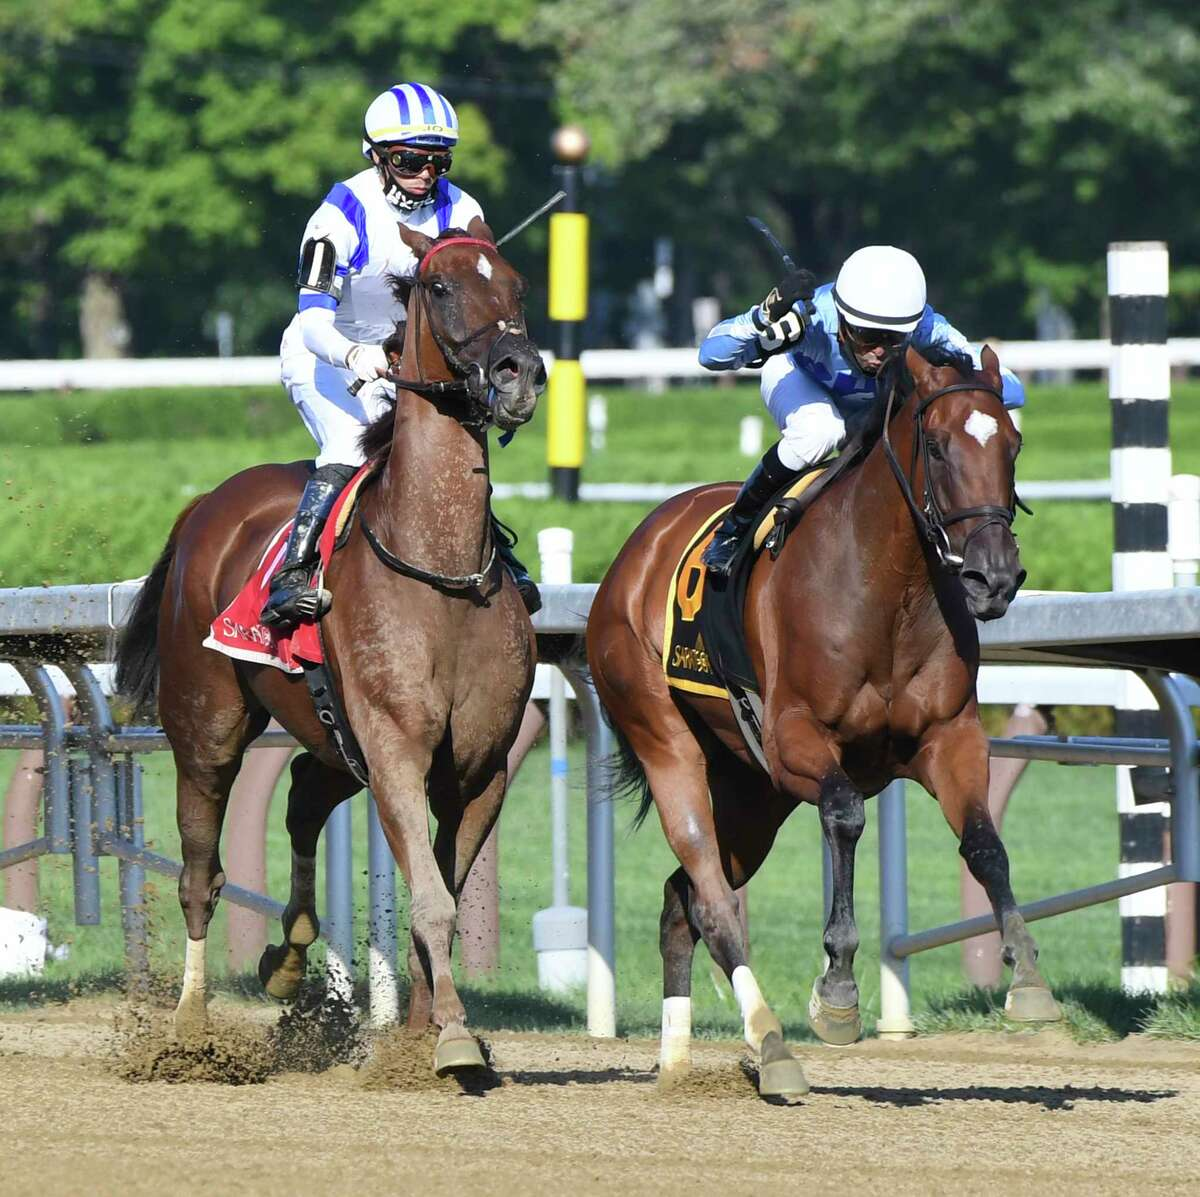 #6 Newly Minted with jockey Jose Lezcano moves away from race favorite #1 Ratajkowski with jockey Jose Ortiz and goes on to win the 17th running of The Union Avenue Thursday Aug.13, 2020 at the Saratoga Race Course in Saratoga Springs, N.Y. Photo by Skip Dickstein/Special to the Times Union